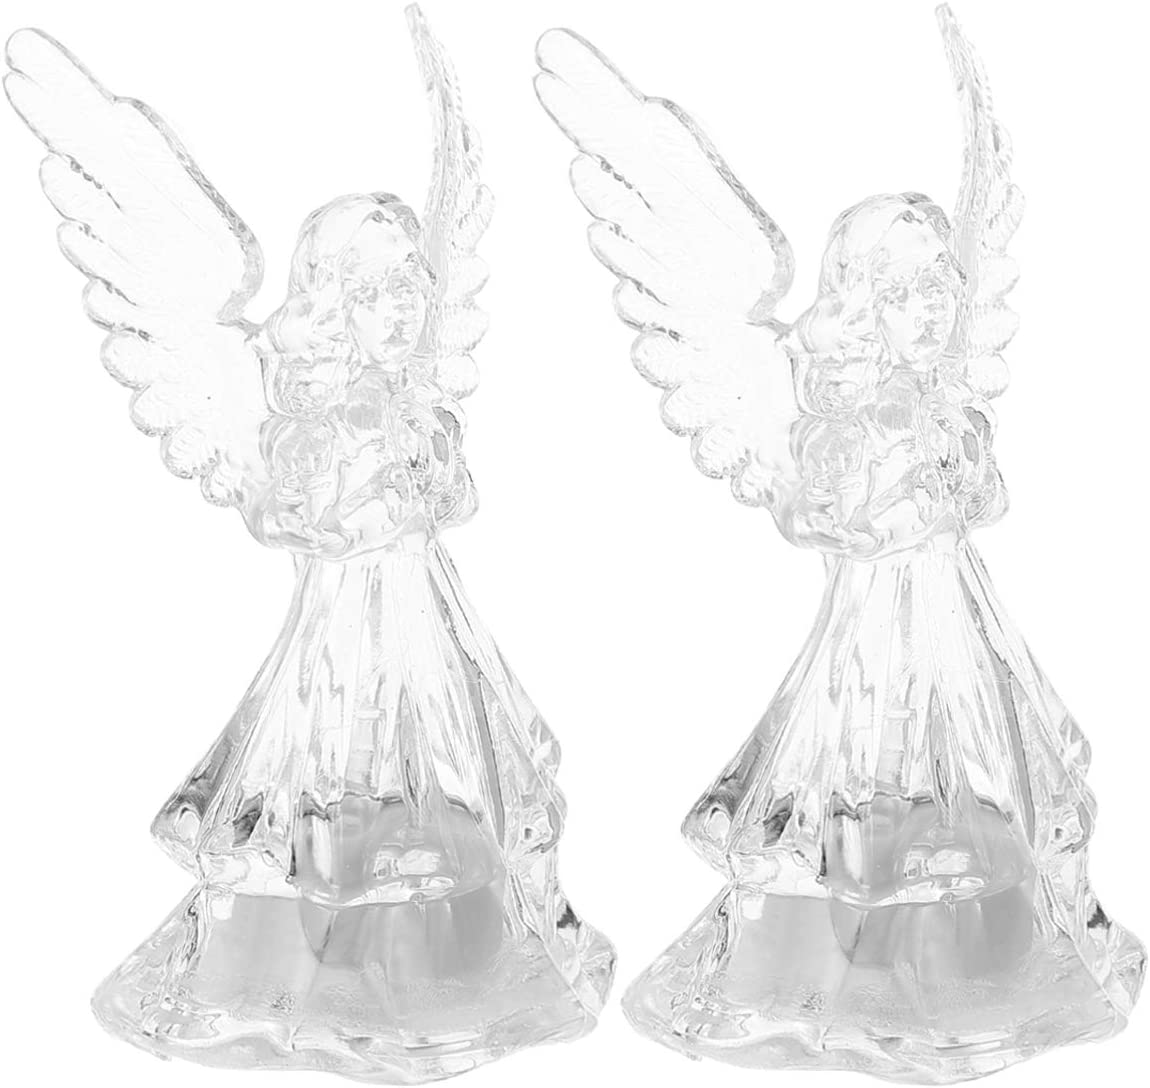 TomaiBaby 2pcs Acrylic Angel Led Lighted Sparkling Figurines Prayer Angel Statues Home Decorative Decor Figurine Angels Statue Xmas Ornaments Decorations